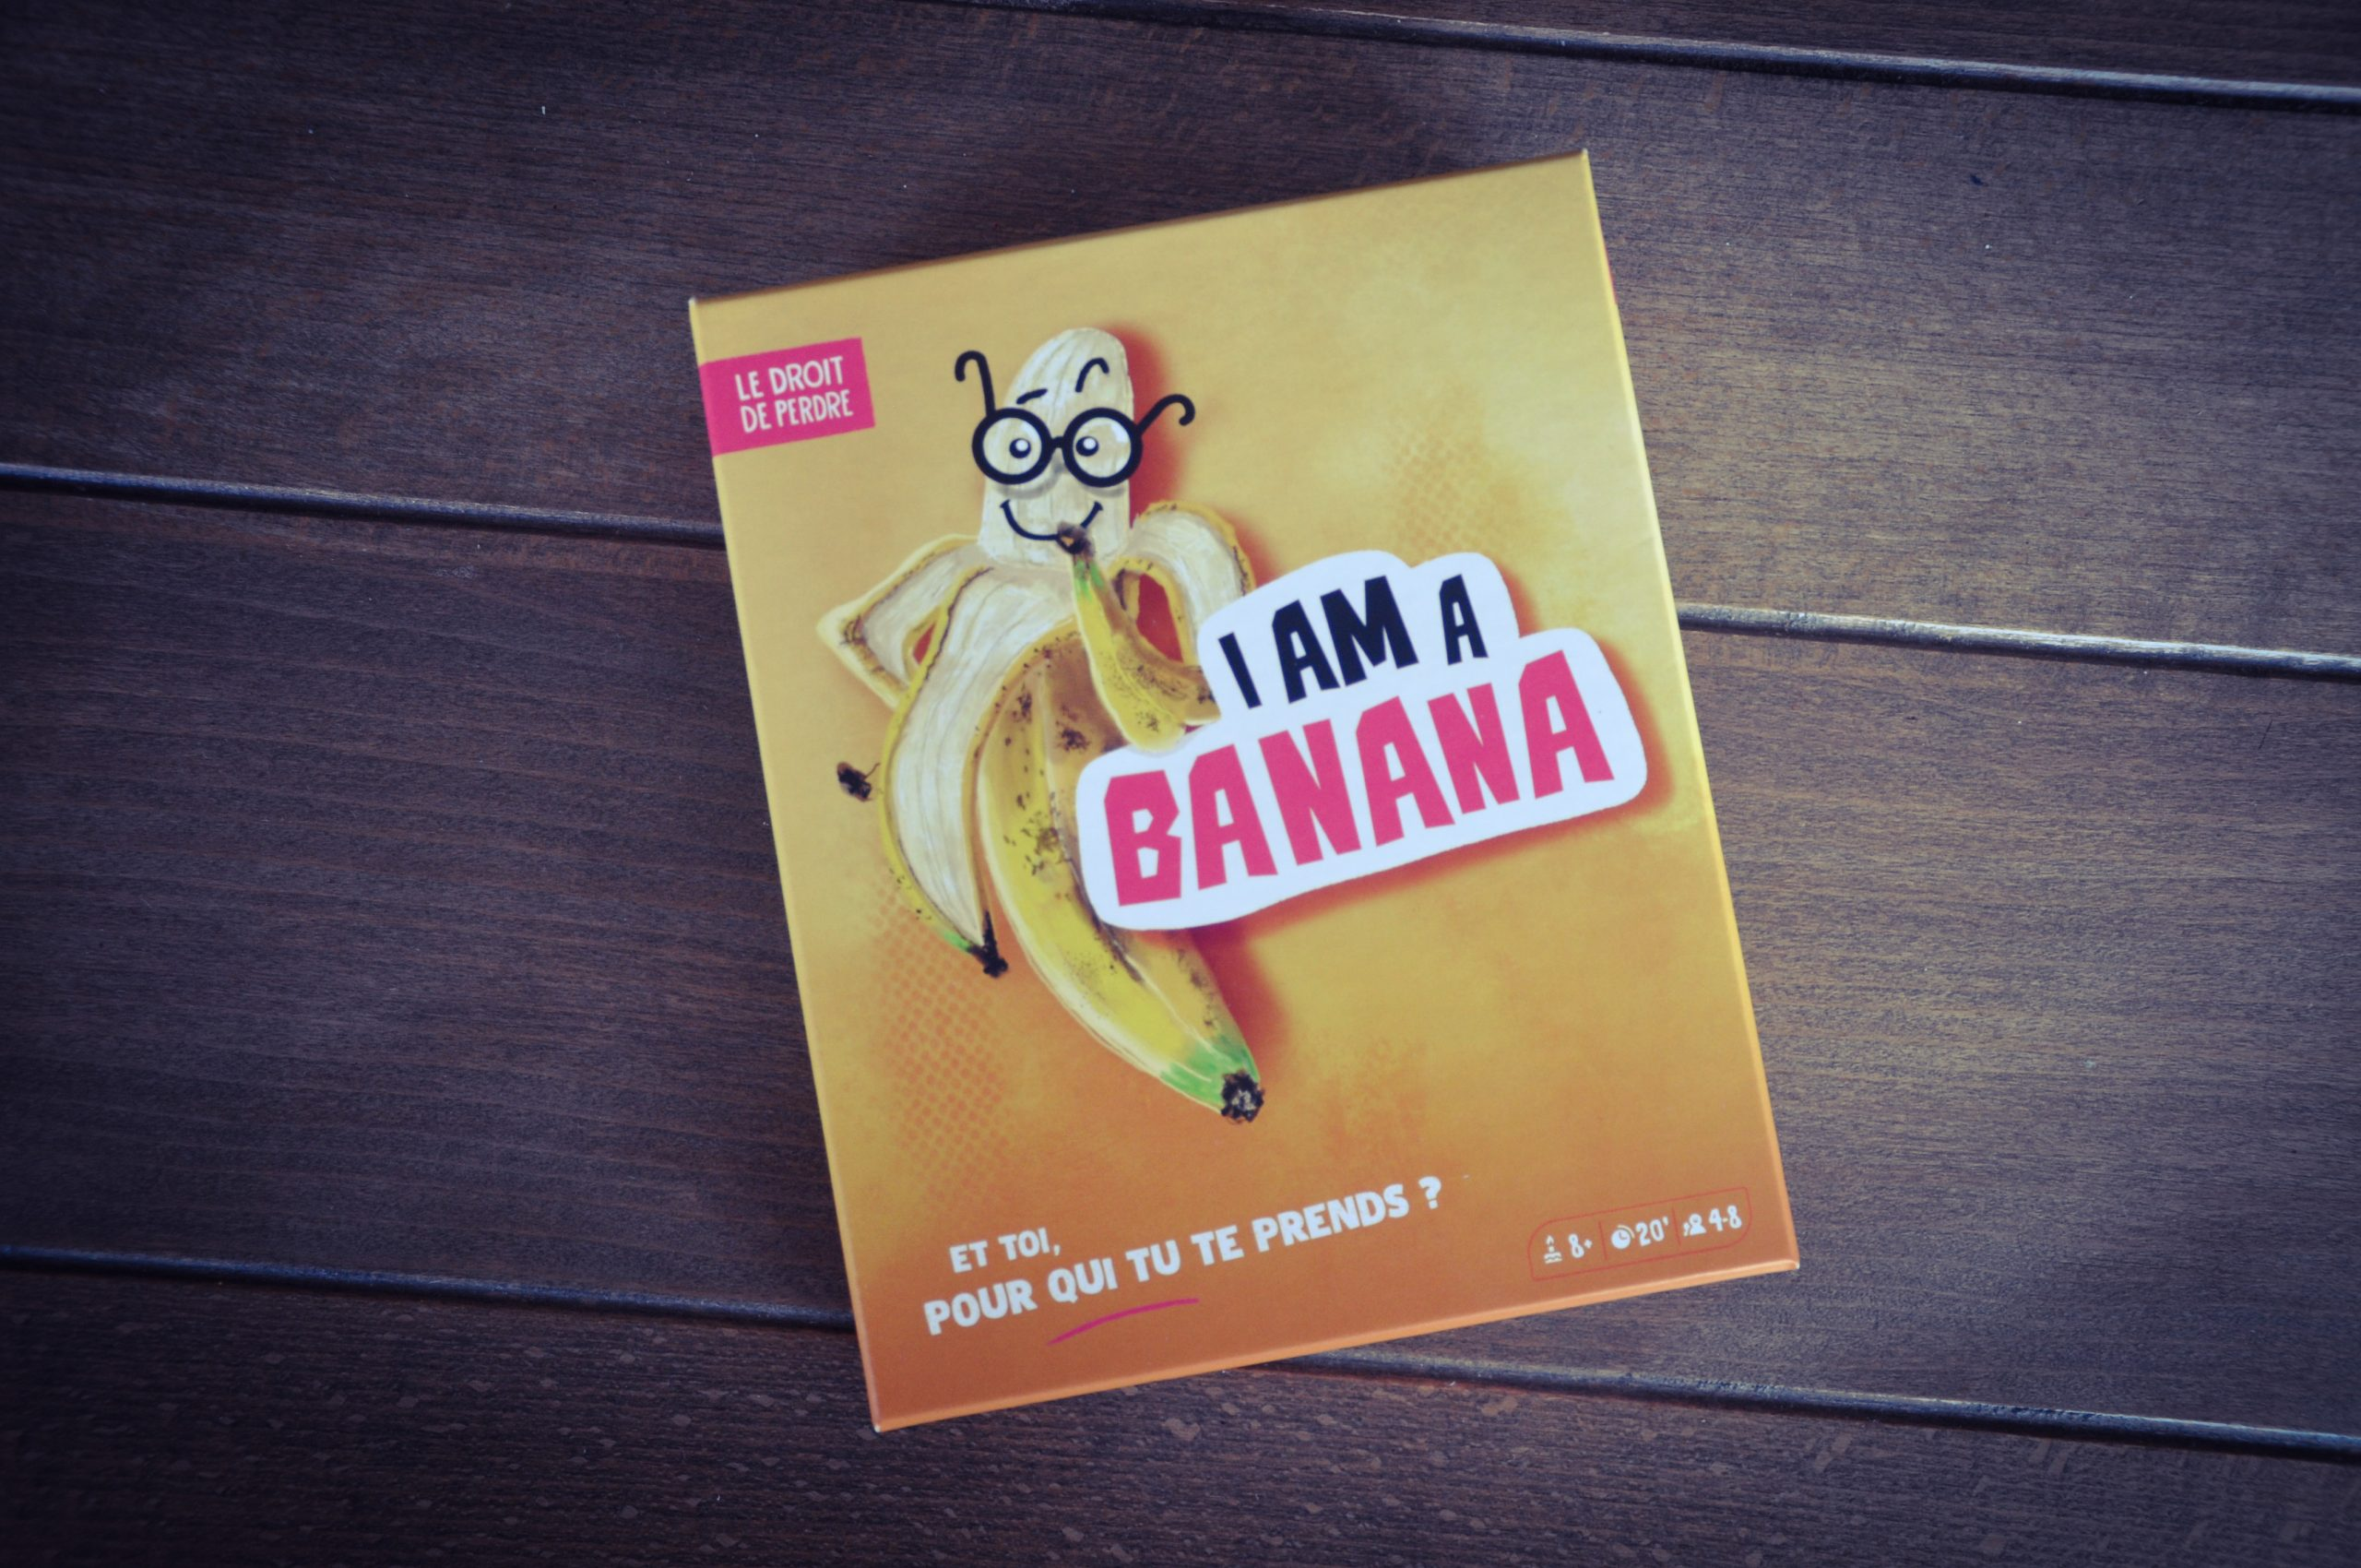 [Test] I am a Banana, le party-game qui vole au dessus d'un nid de coucous